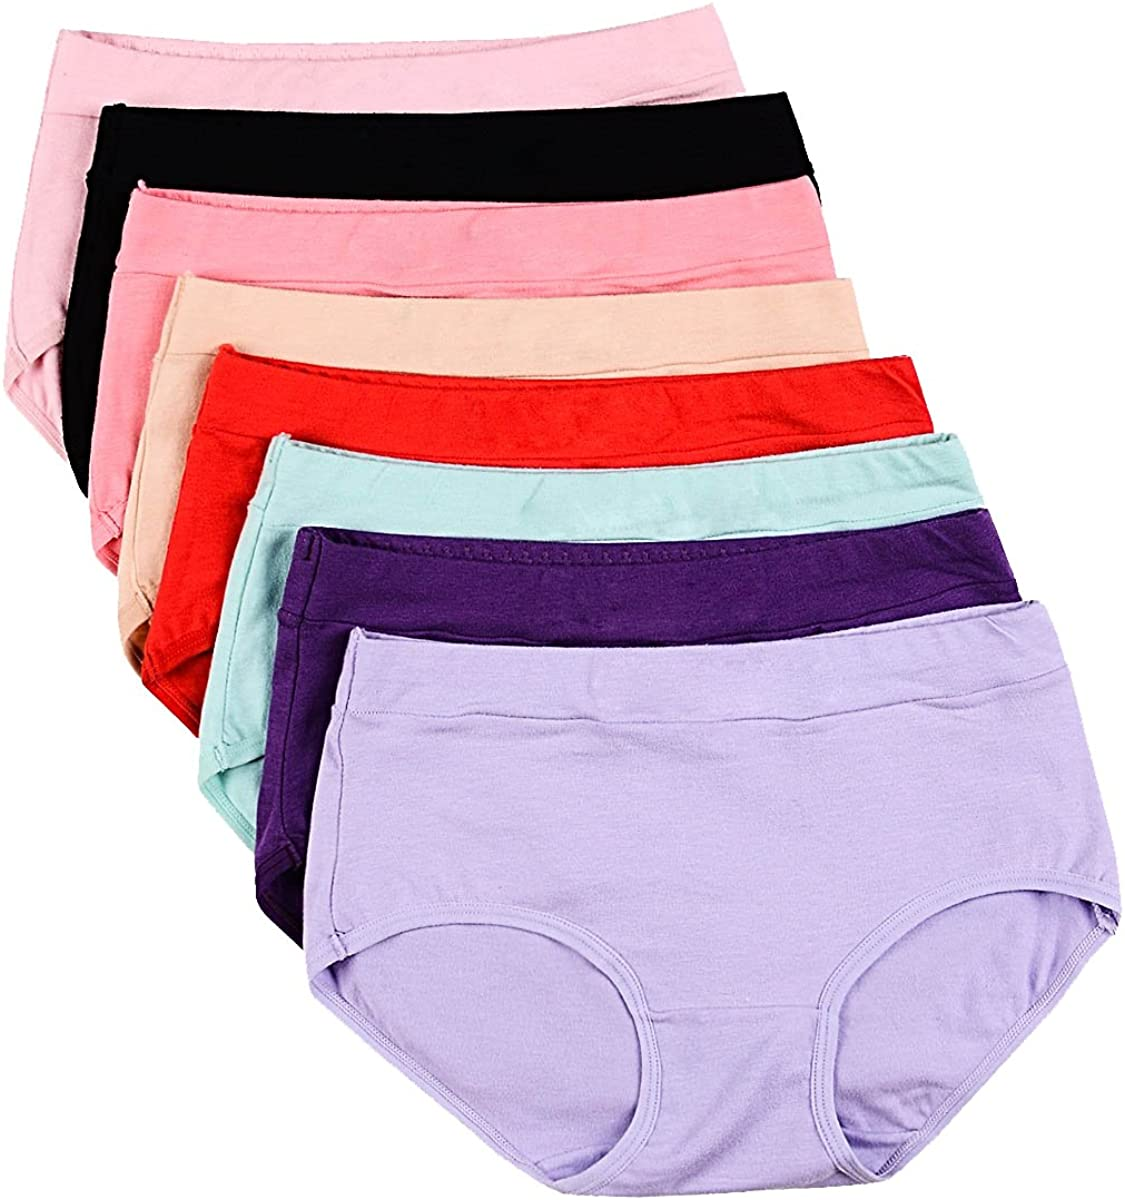 Buankoxy Women's Mid-Rise Stretch Color Max 41% OFF Cotton Genuine Free Shipping Assorted Panties